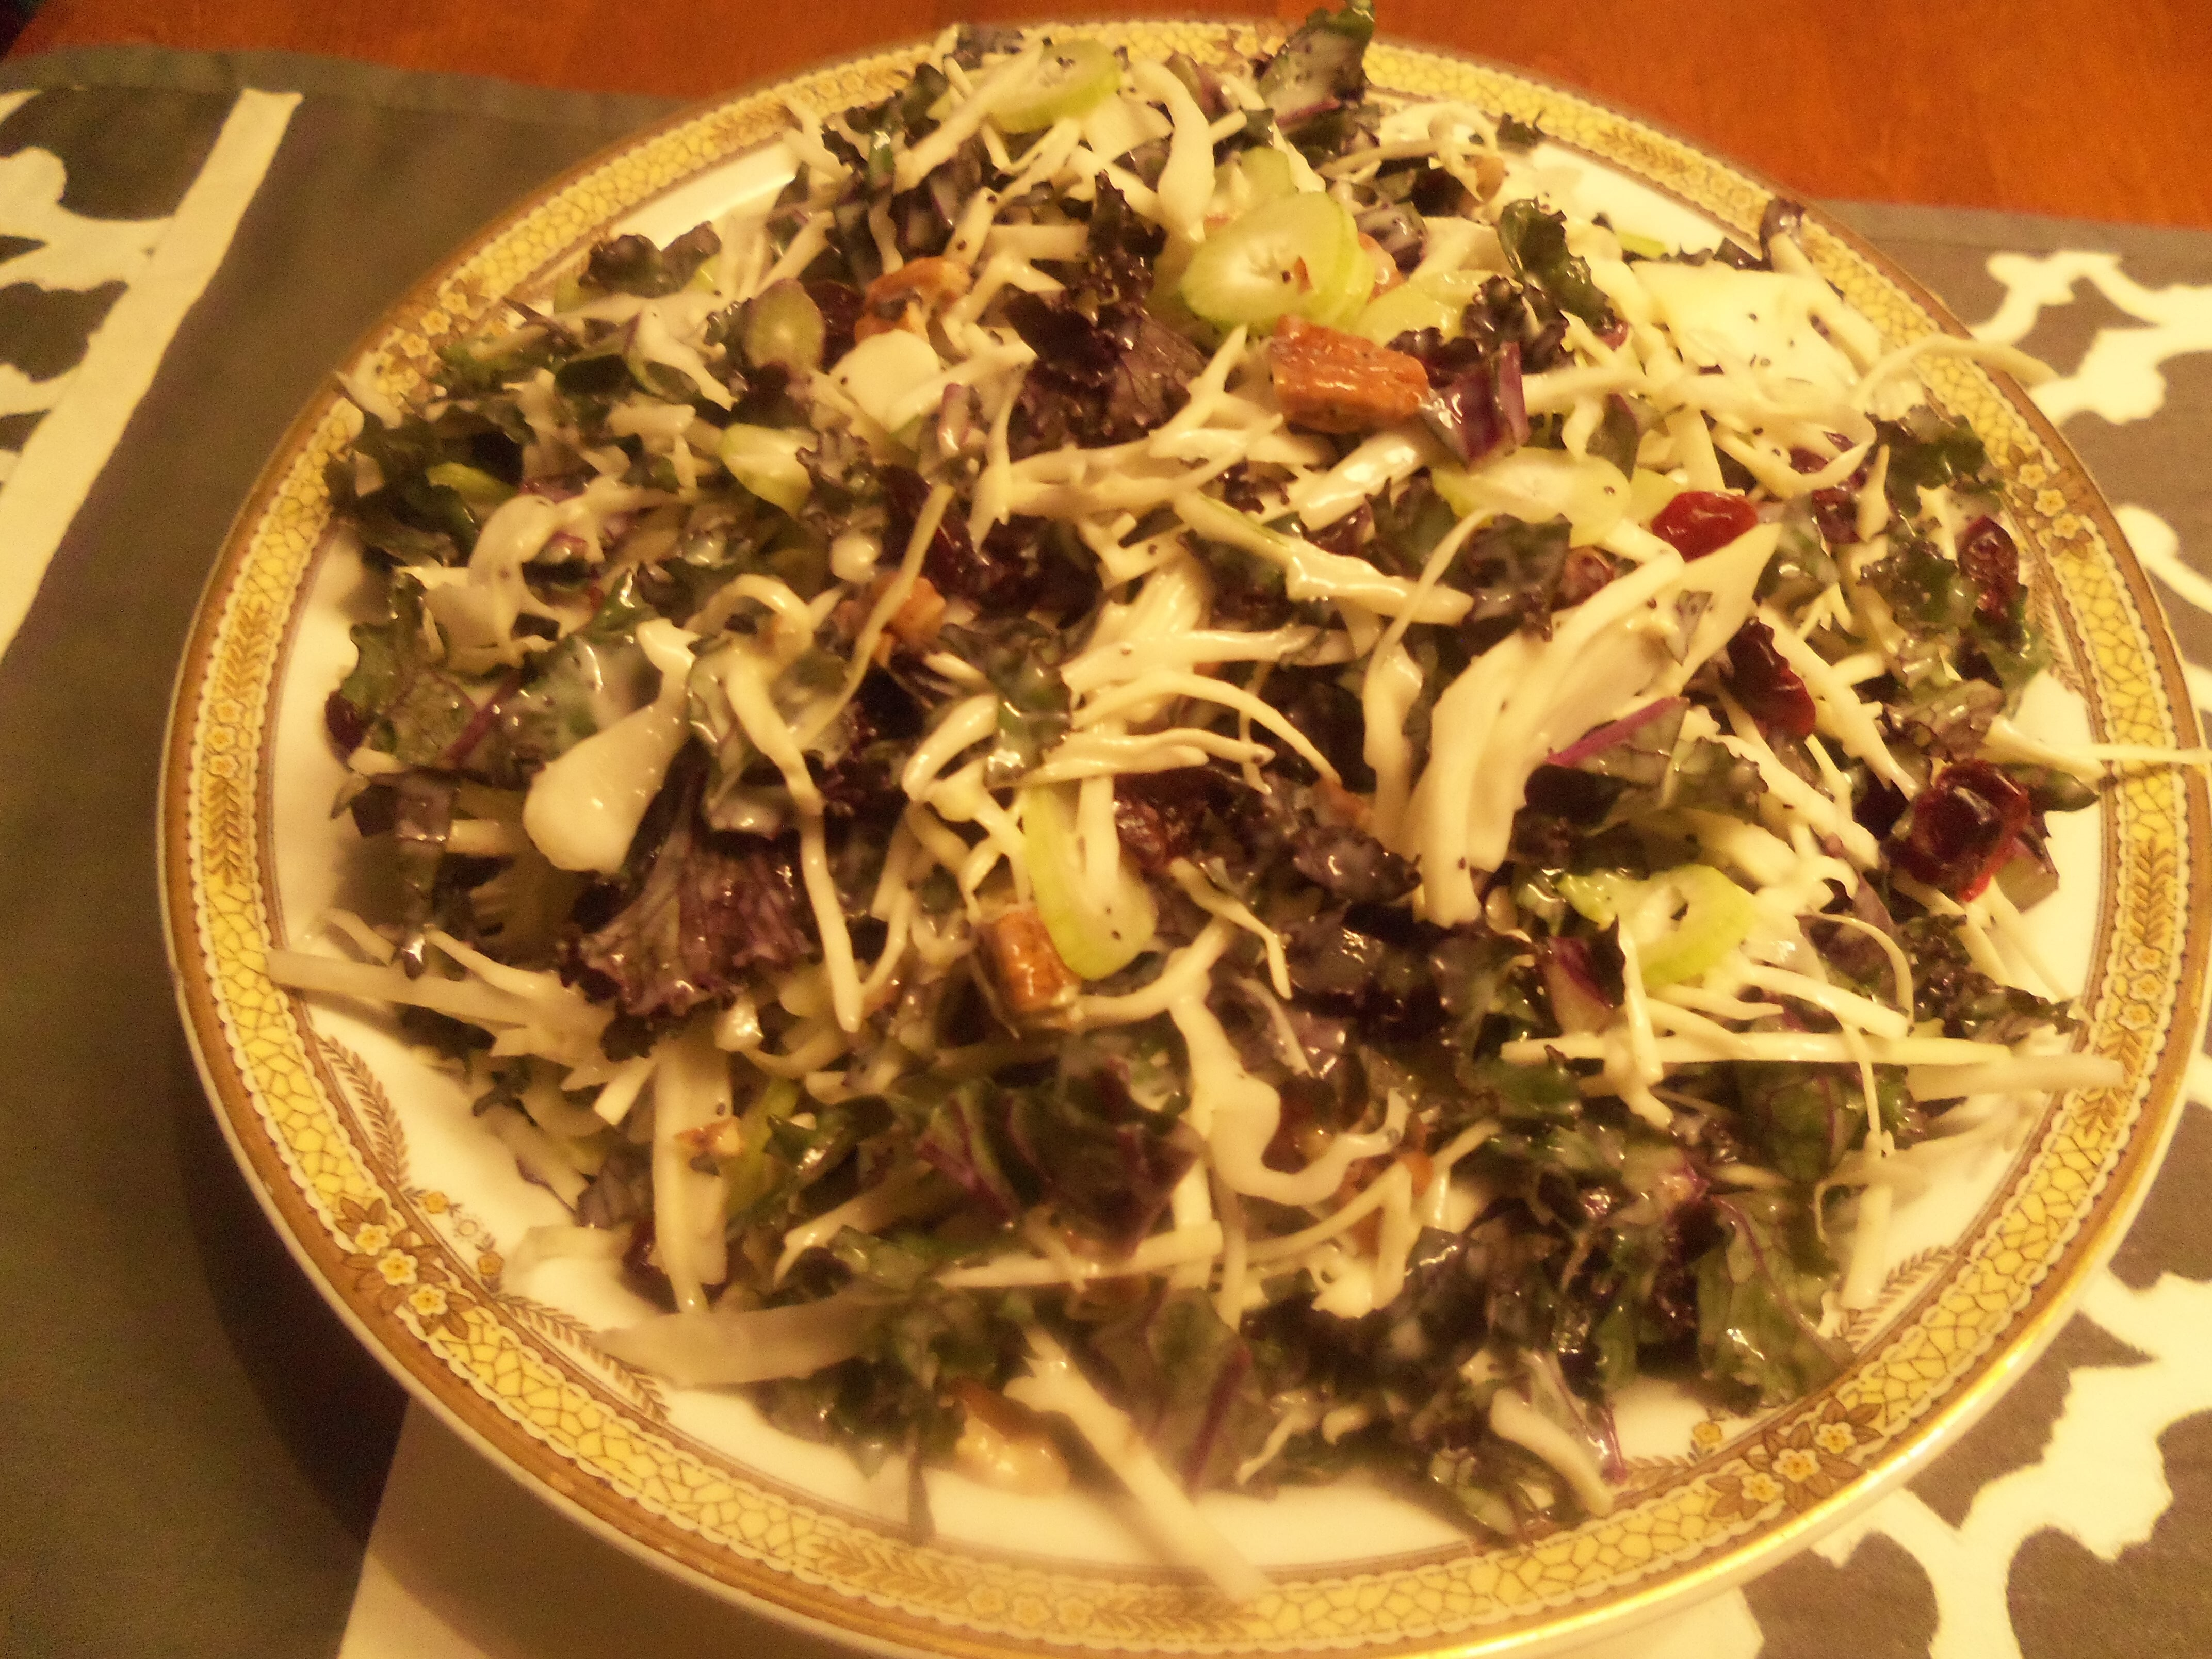 Kale, Cabbage, and Fennel Salad With Poppy Seed Dressing